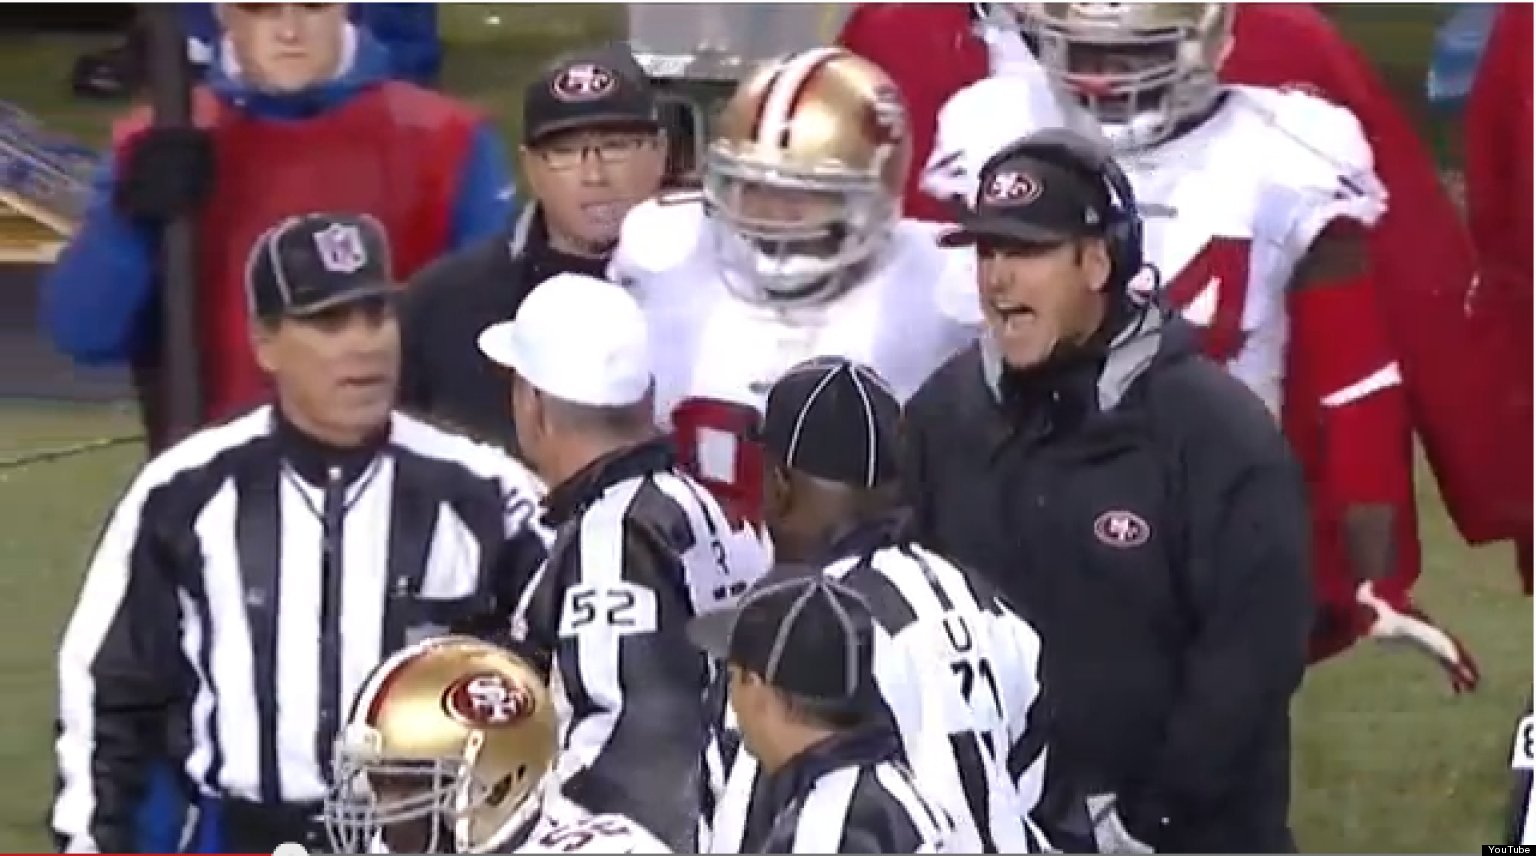 The NFL Gets A Bad Lip Reading What Theyre Really Saying Is More - A bad lip reading of the nfl